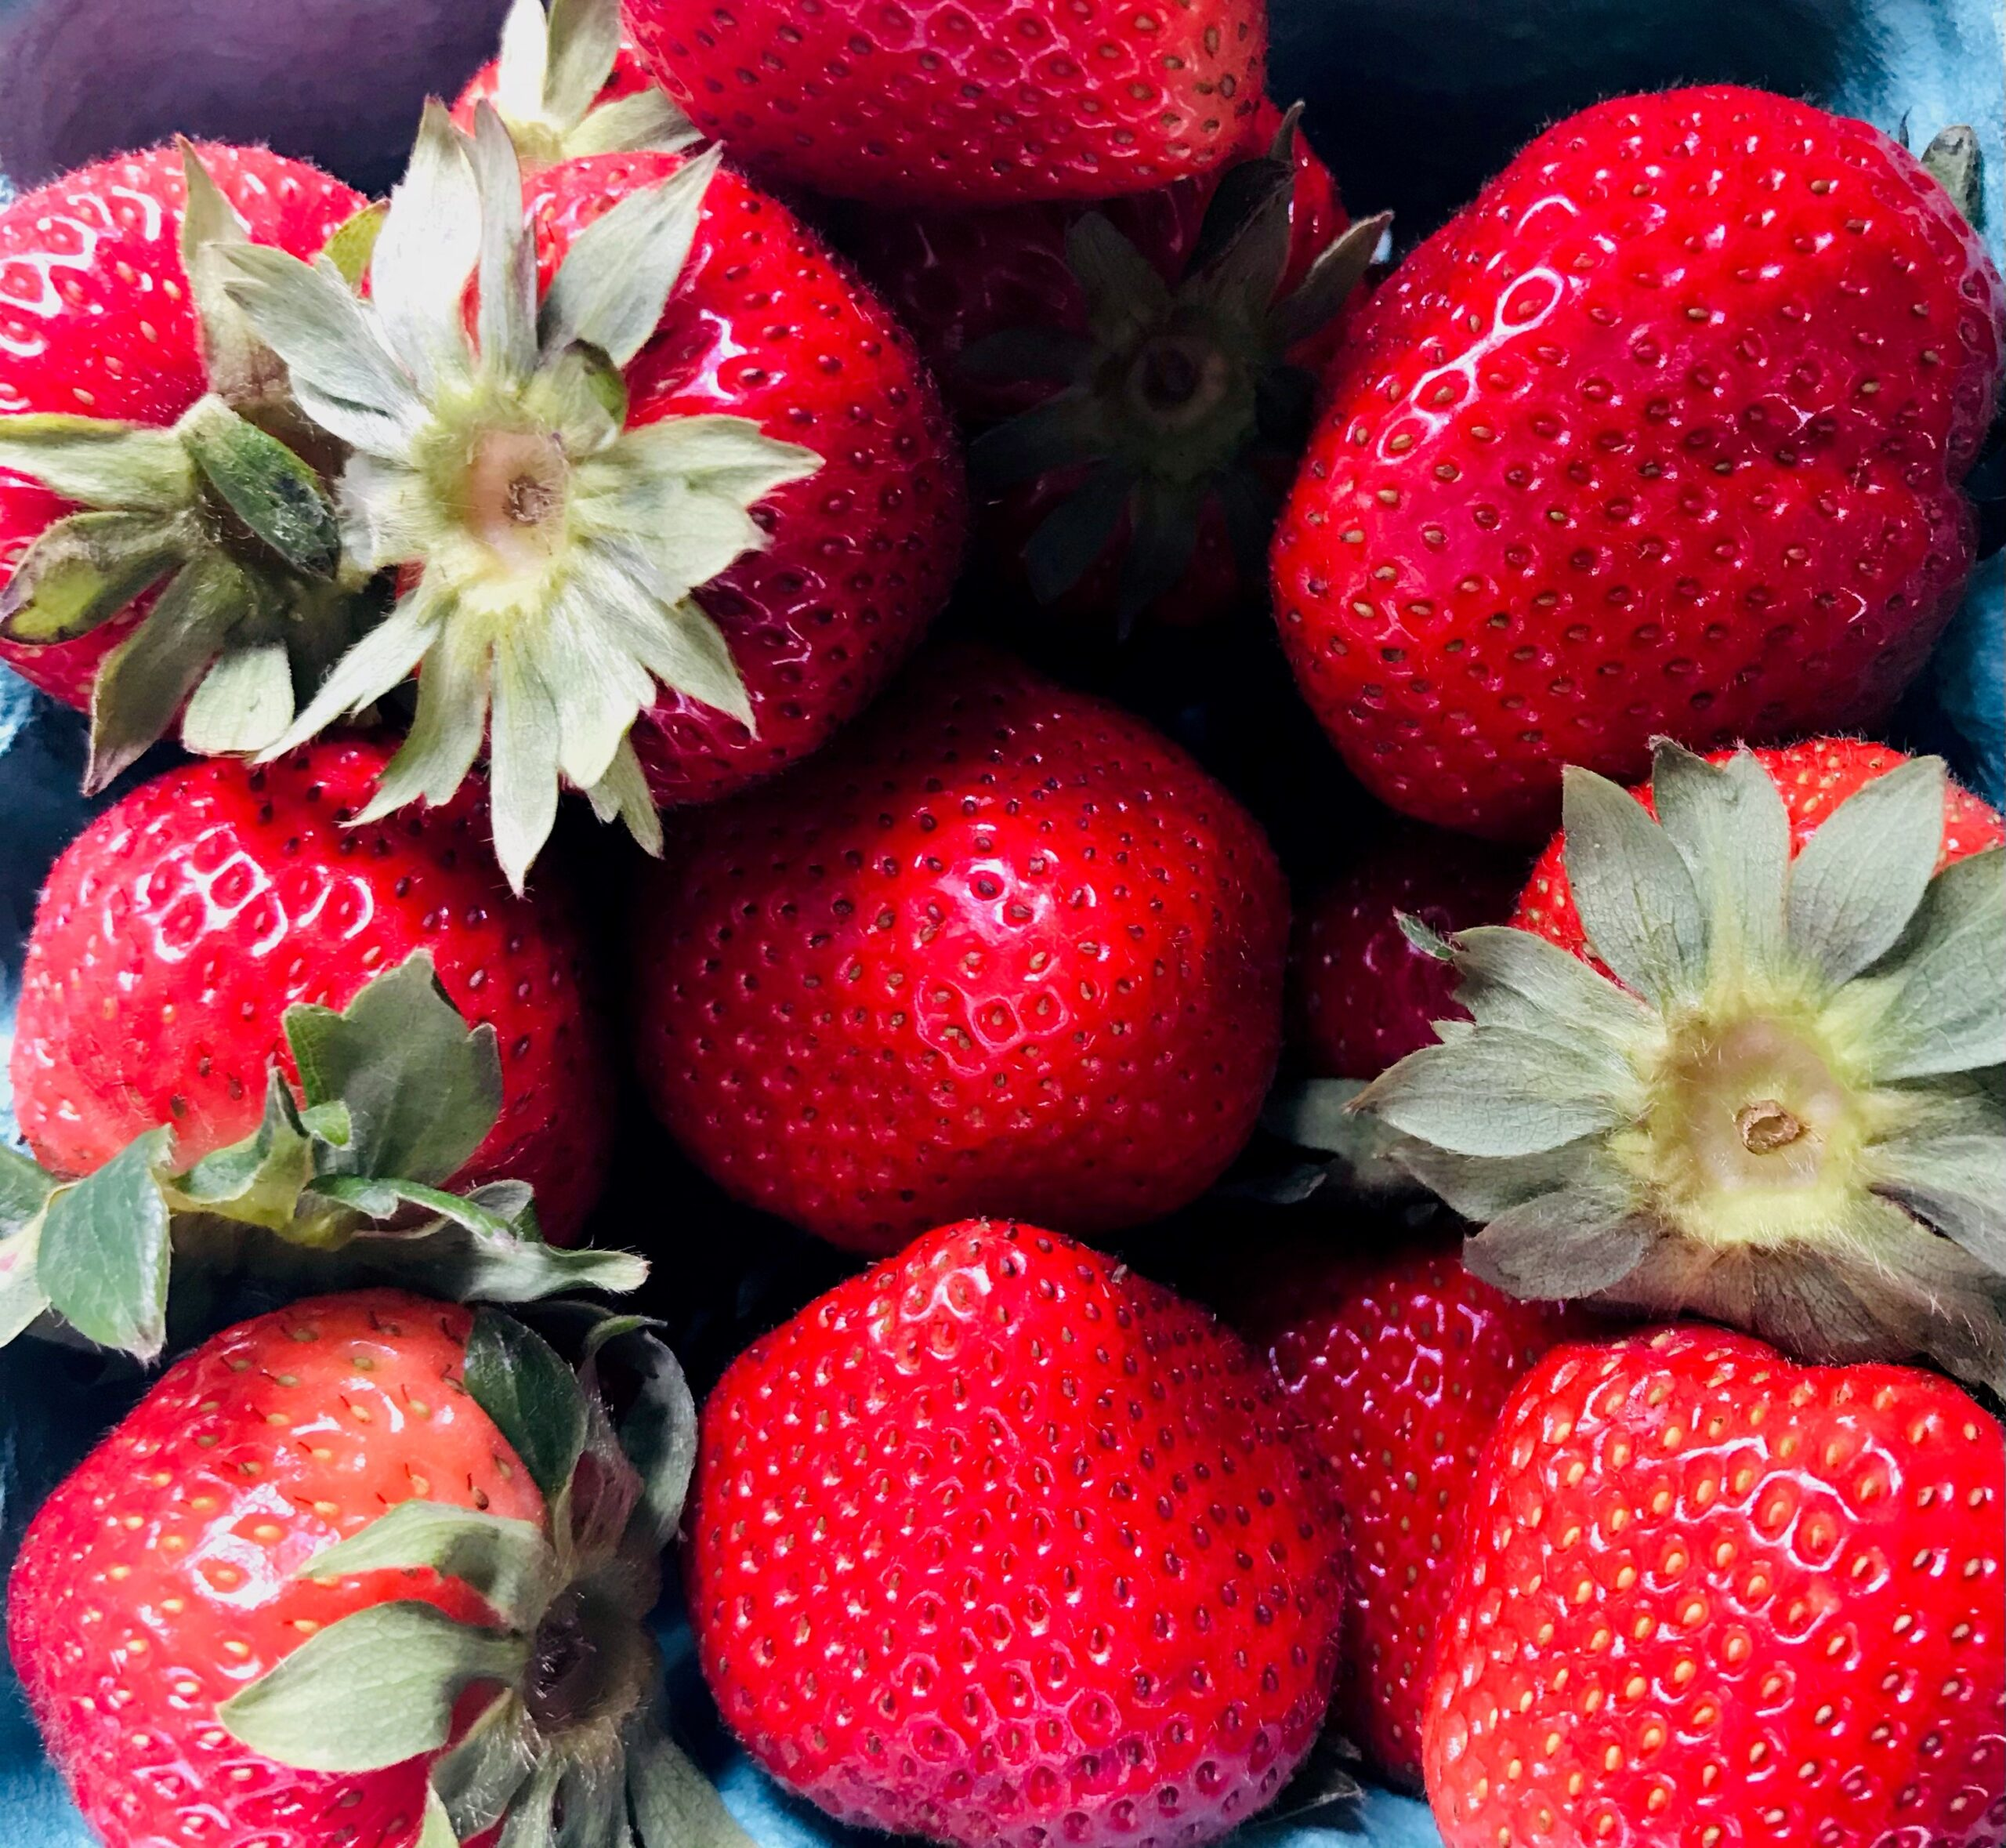 Insuring Farmer's Markets and Roadside Stands